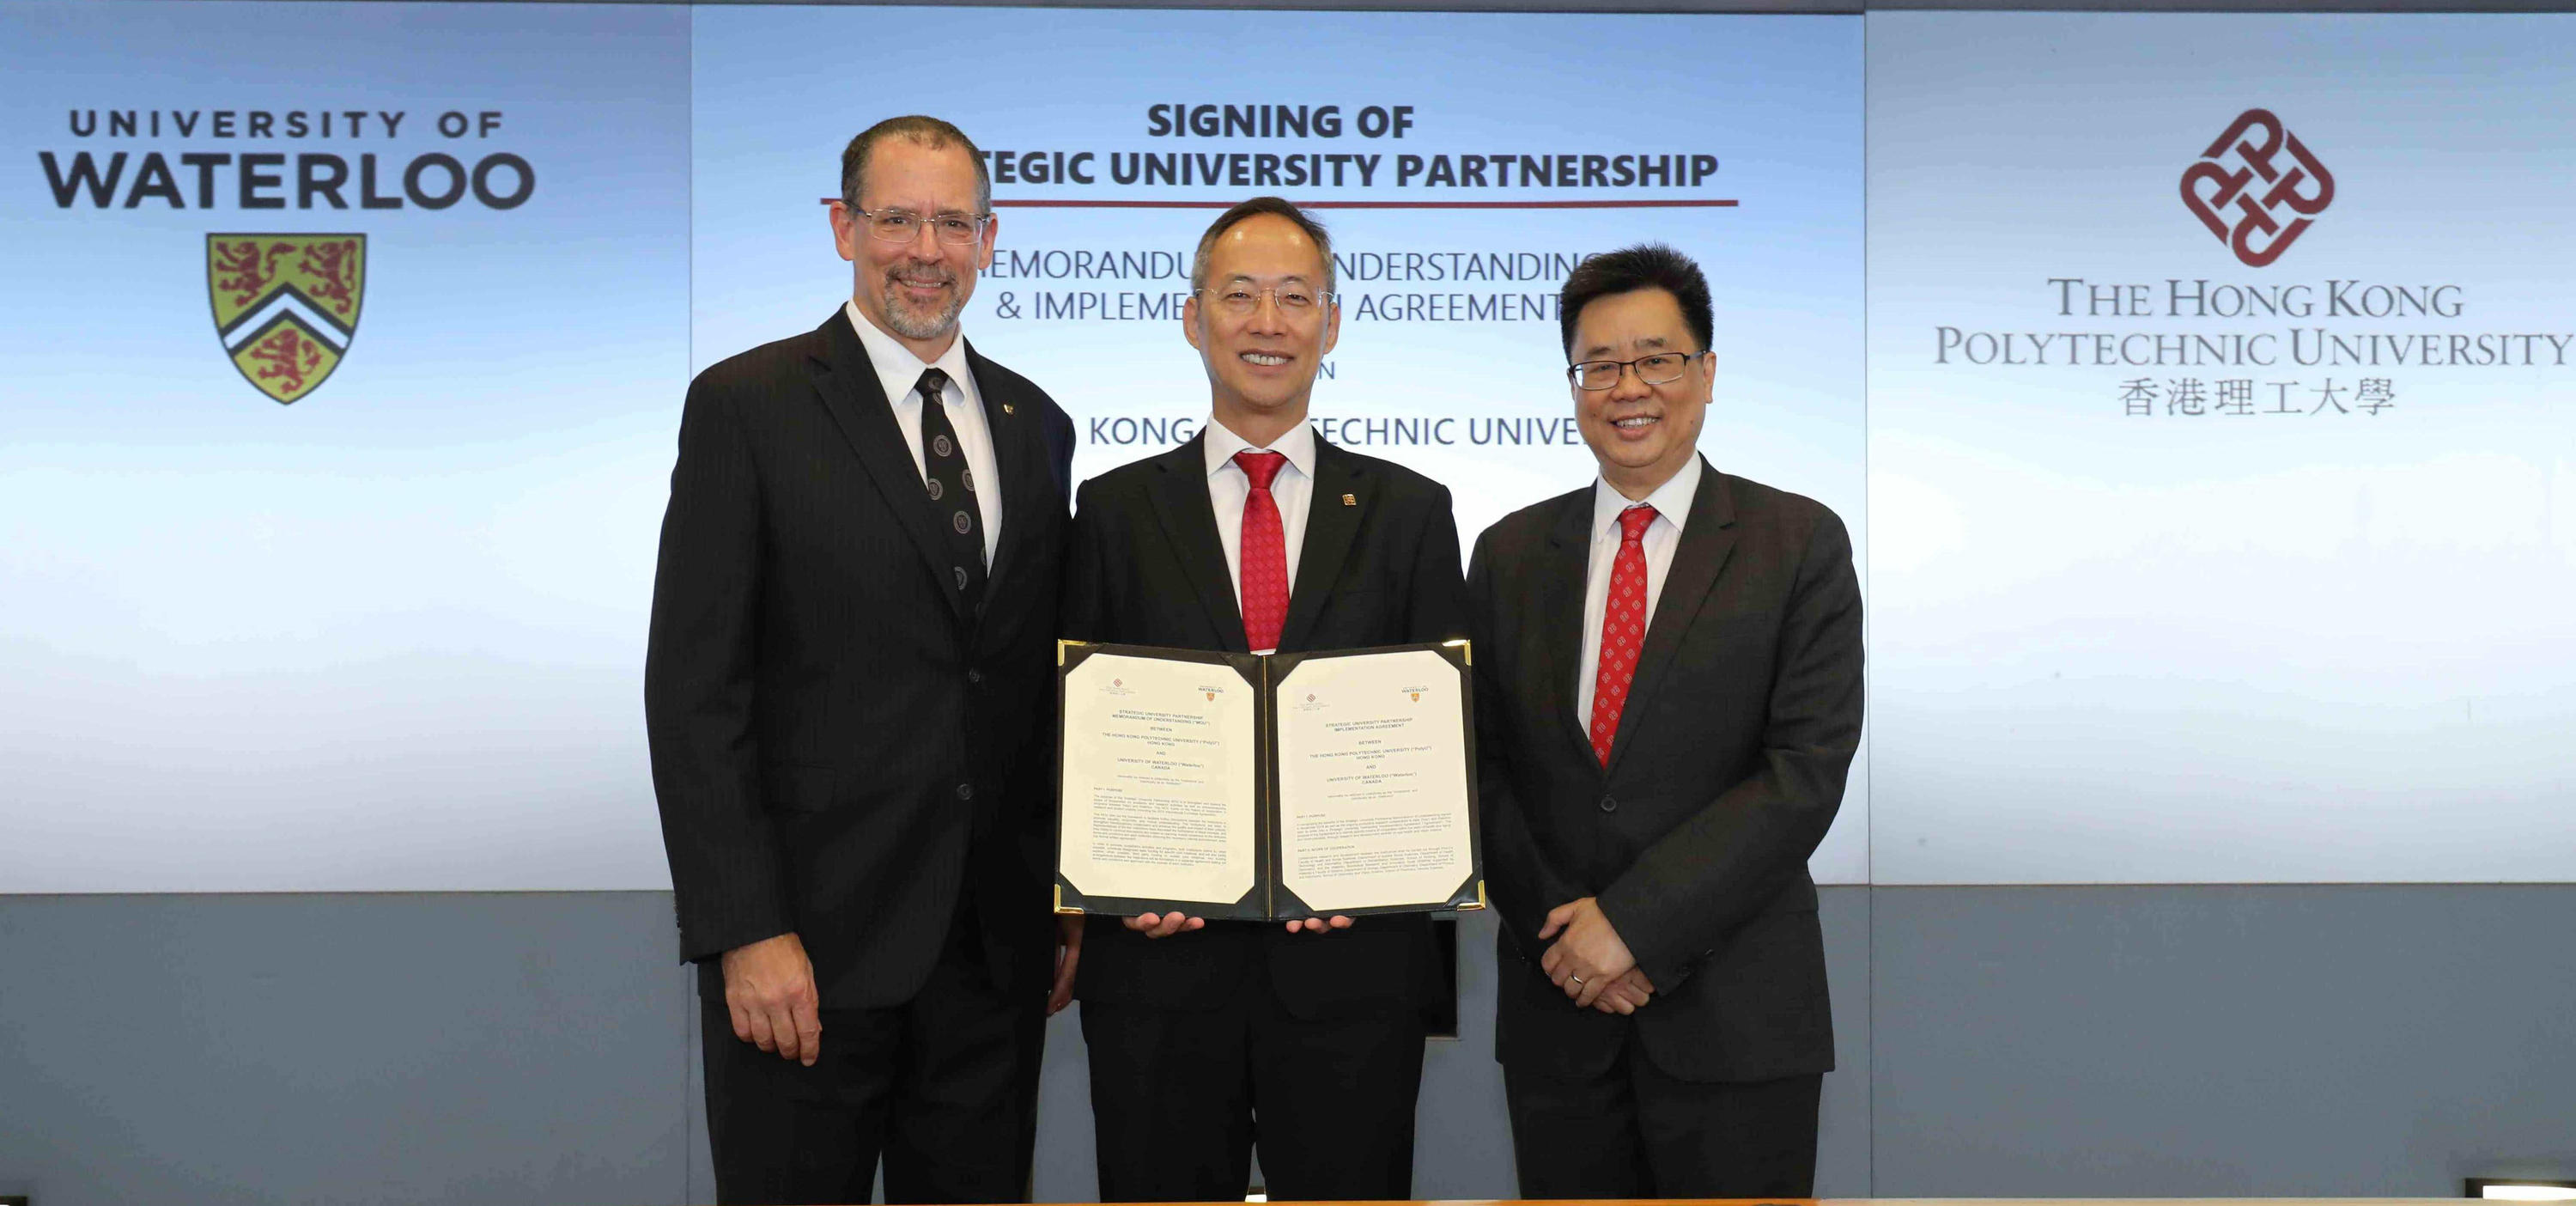 Alexander Wai holds signed agreement and poses with Bob Lemieux and David Shum.